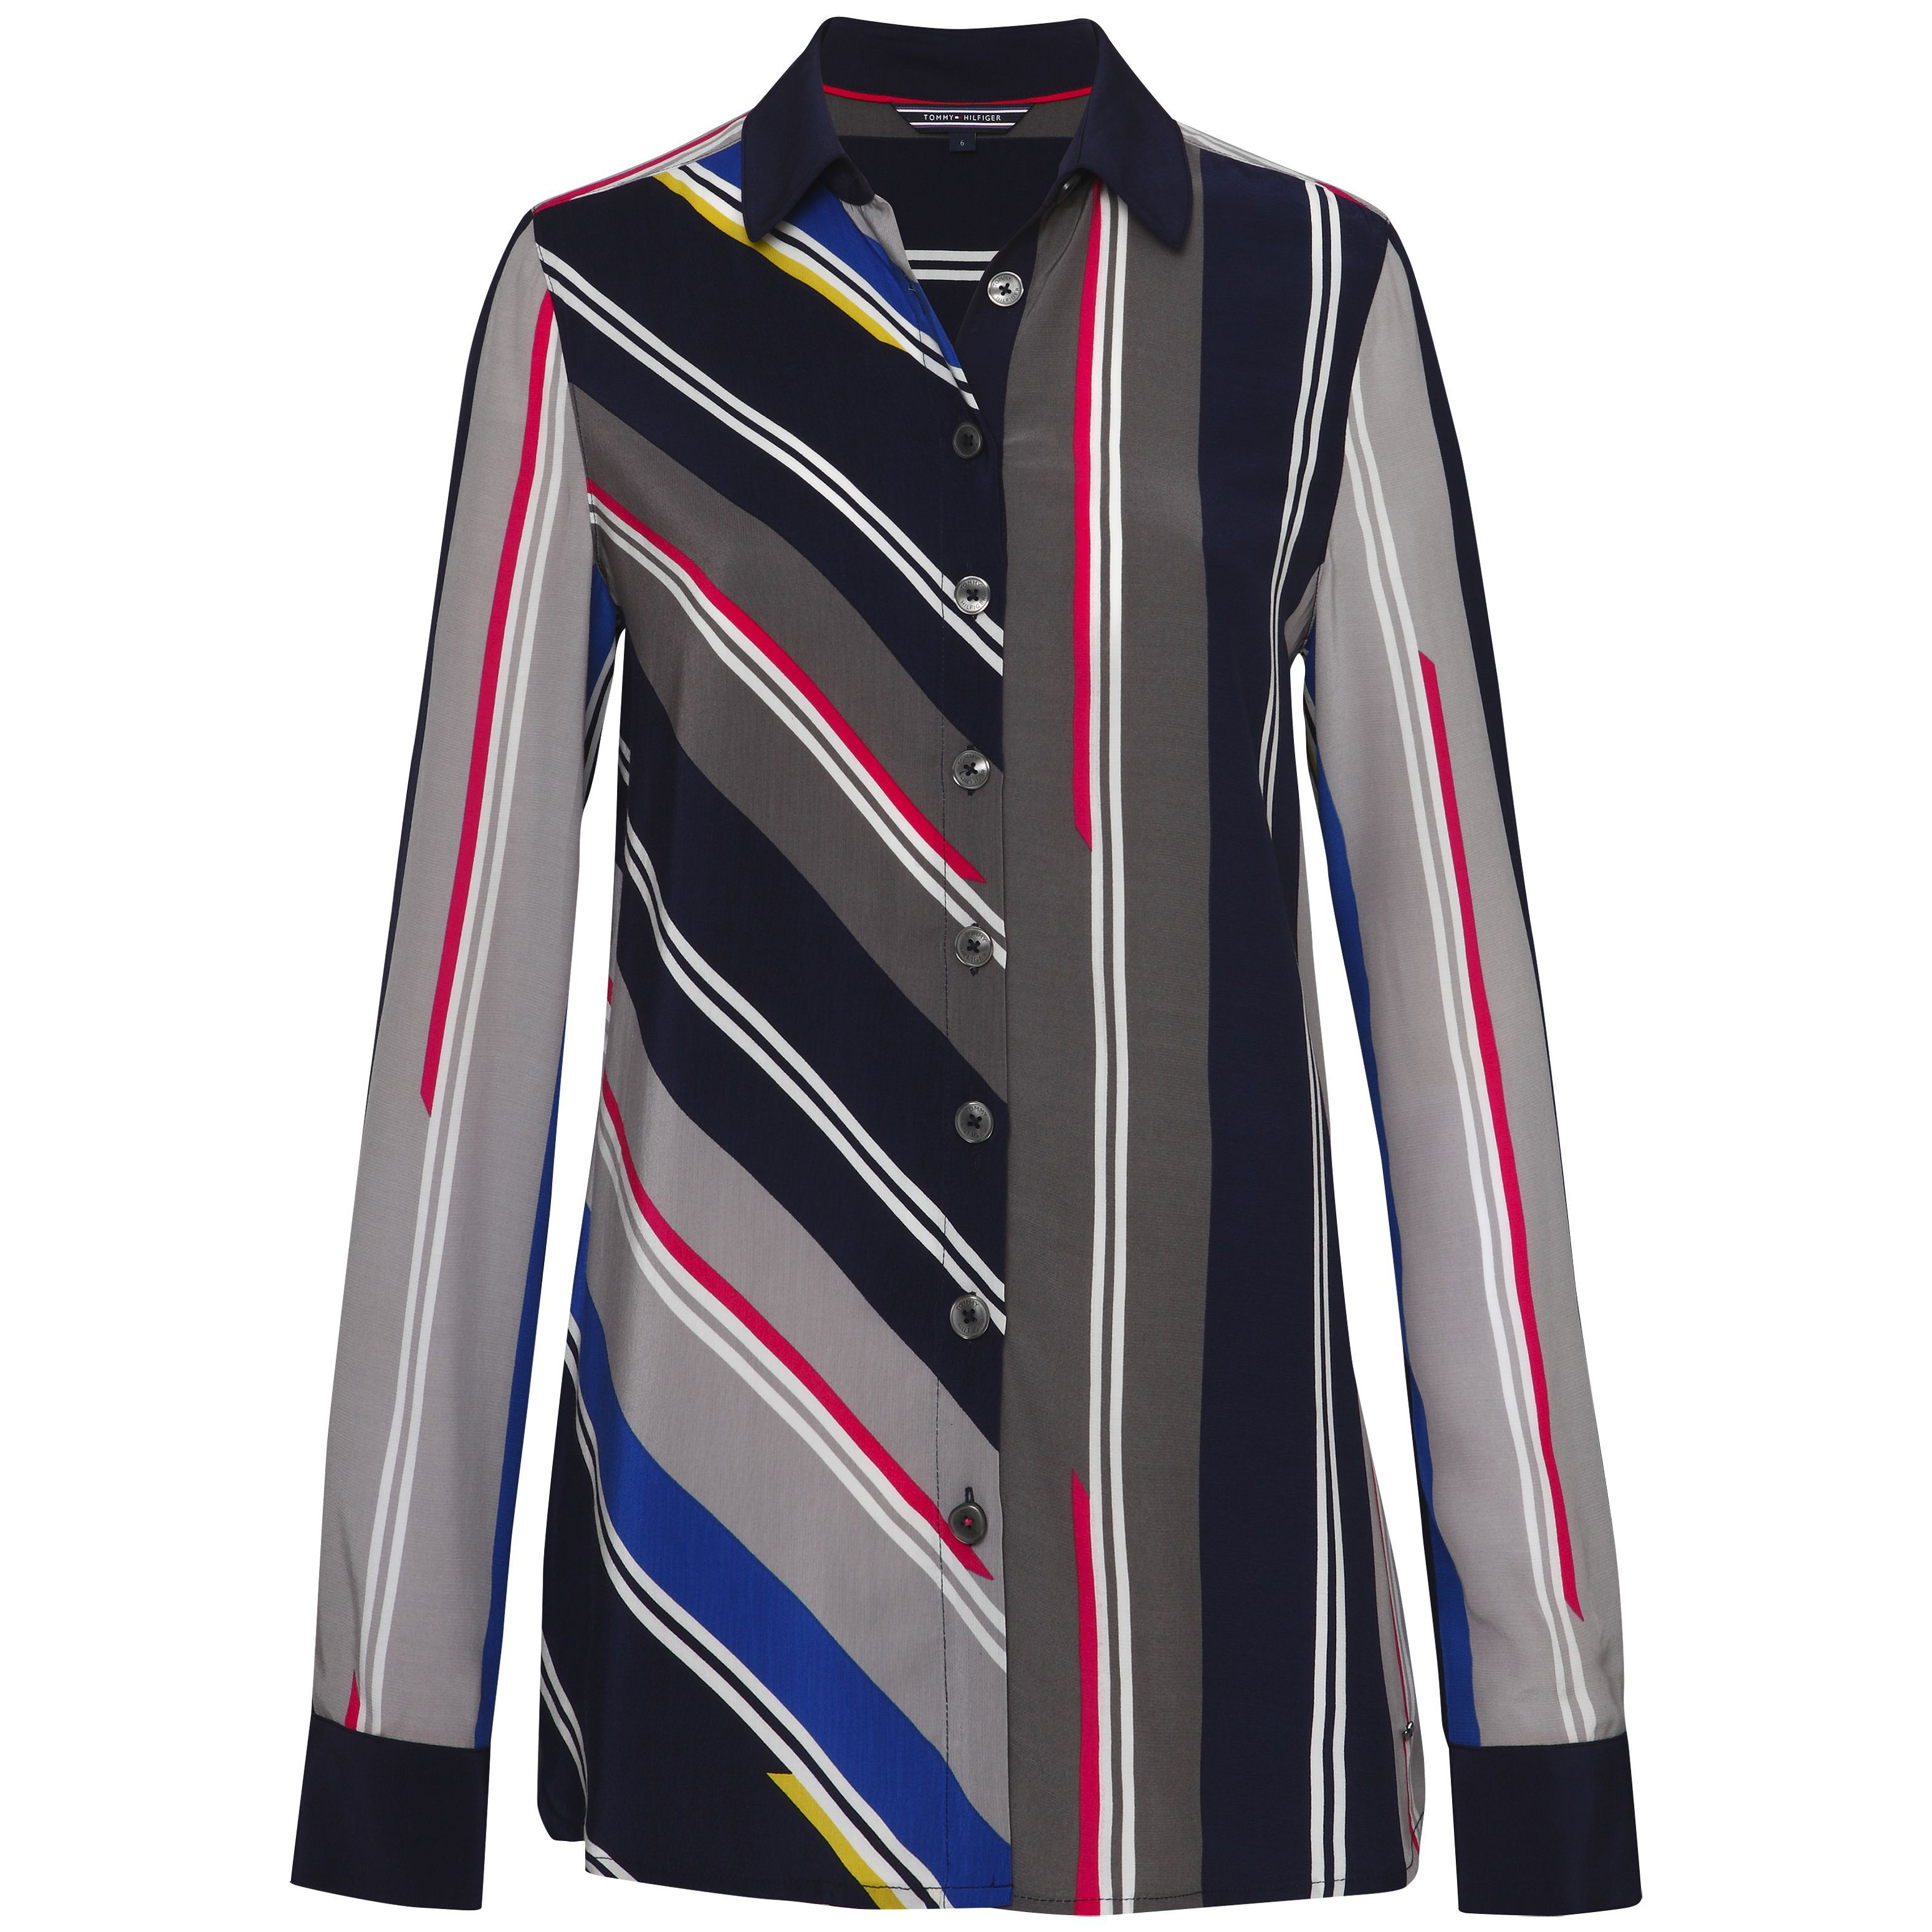 Tommy Hilfiger Nalome Viscose Long Sleeve Blouse, Multi-Coloured